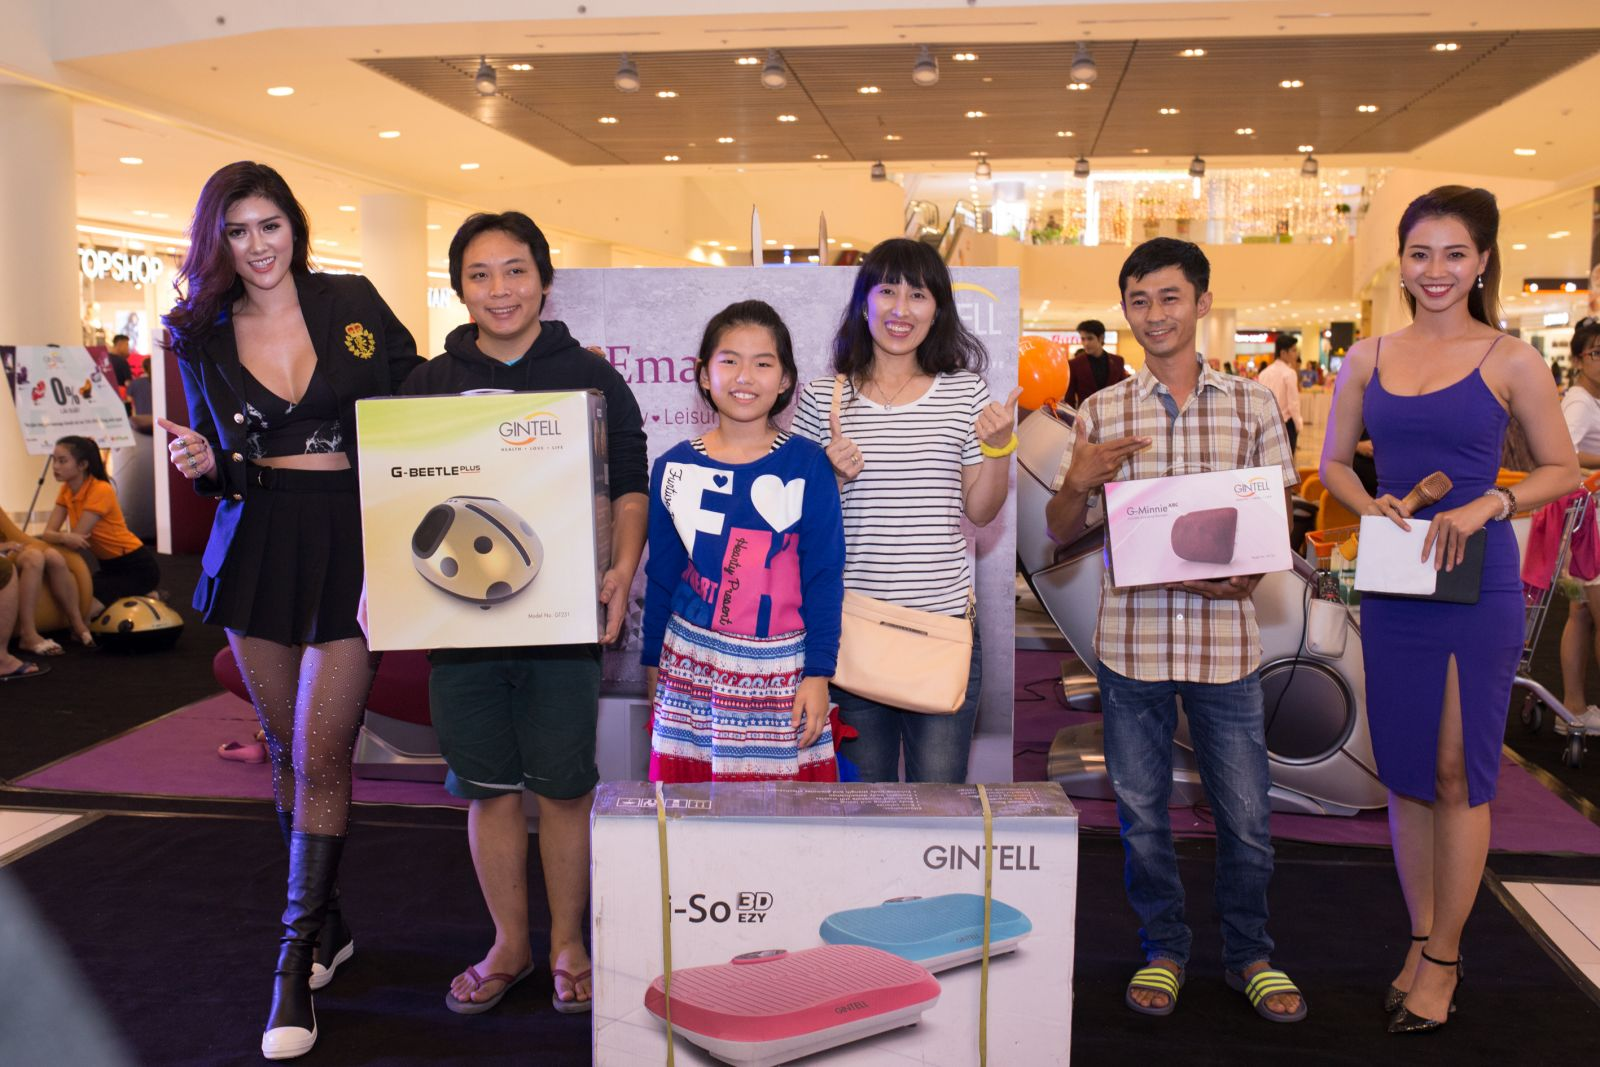 Gintell SC VivoCity event - October 2017